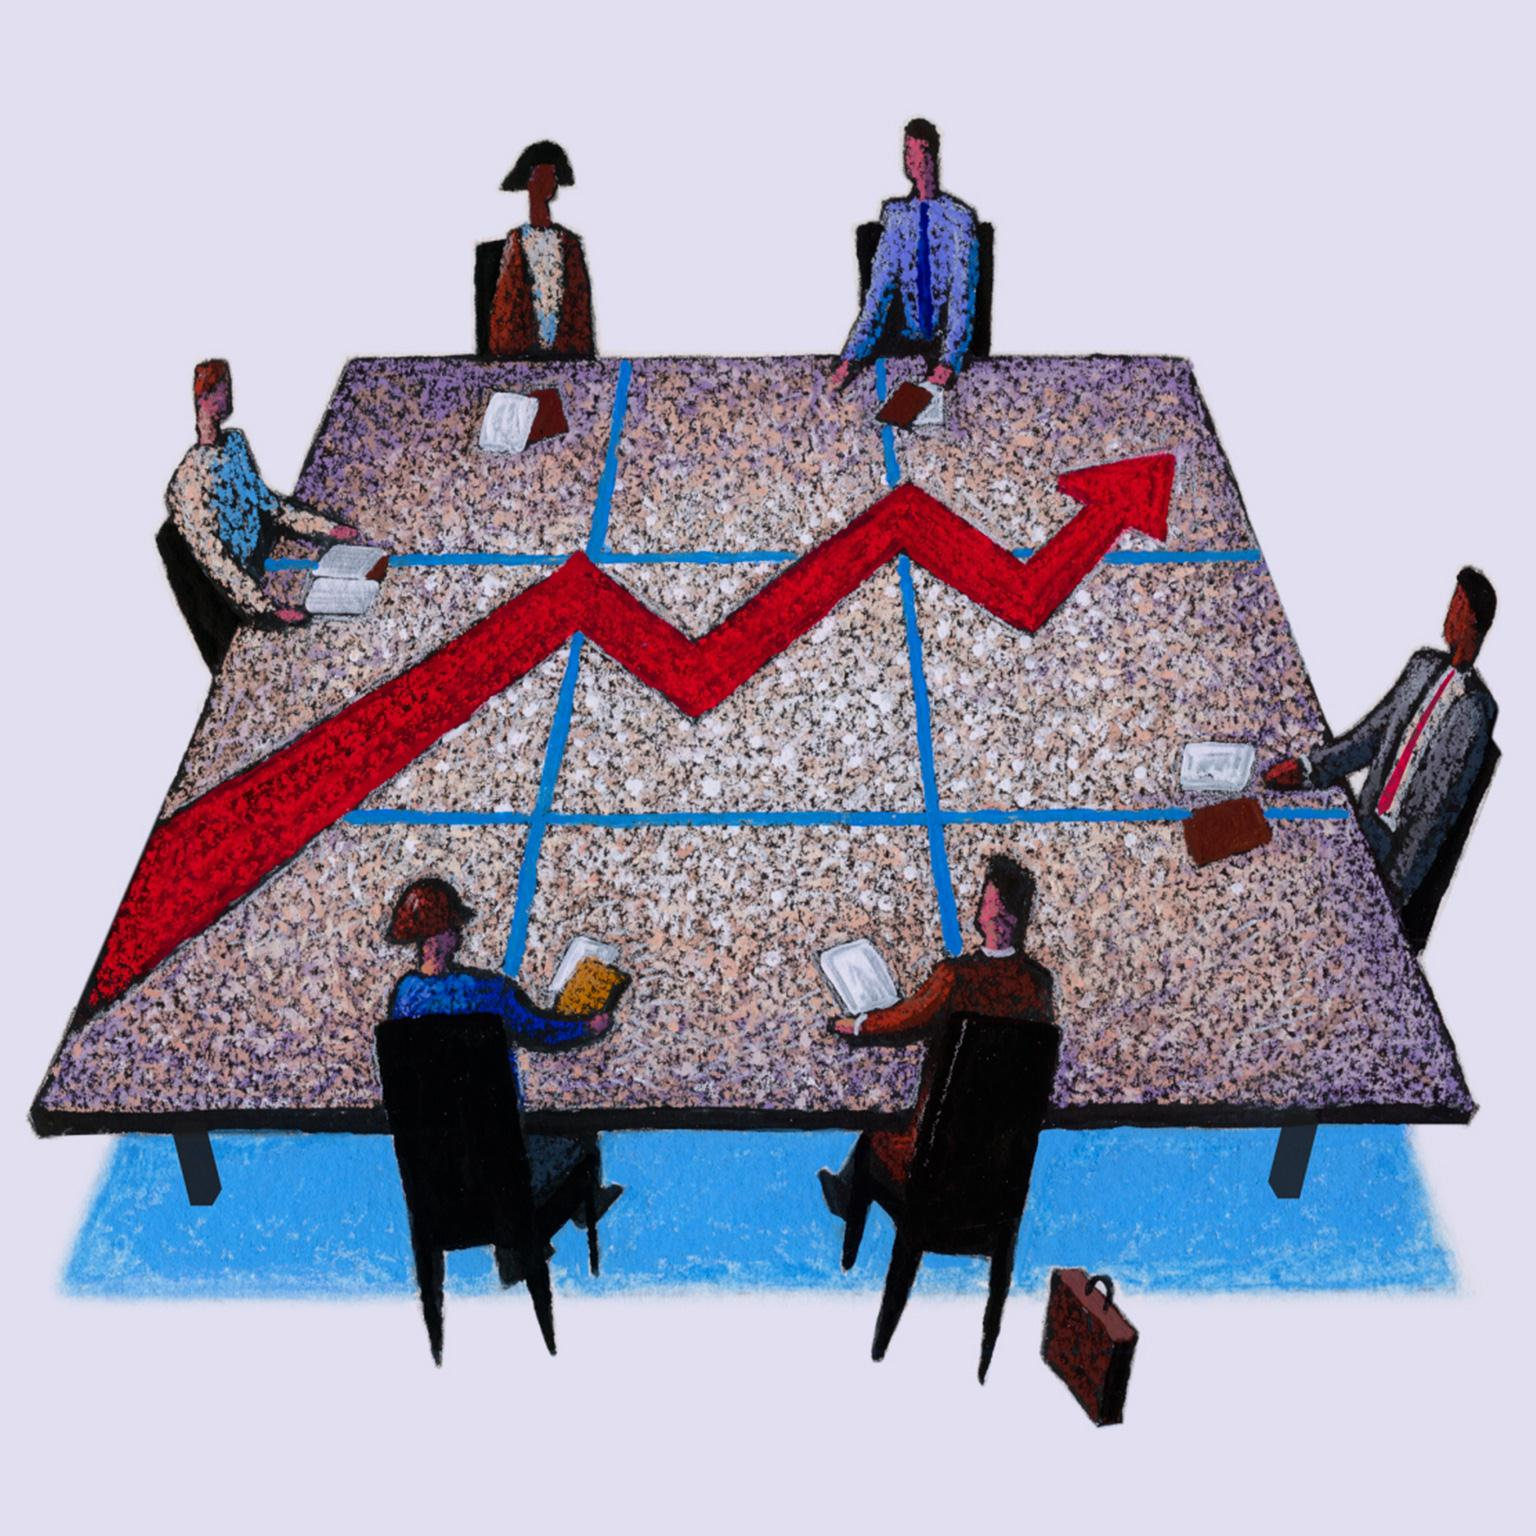 High-performing boards: What's on their agenda?